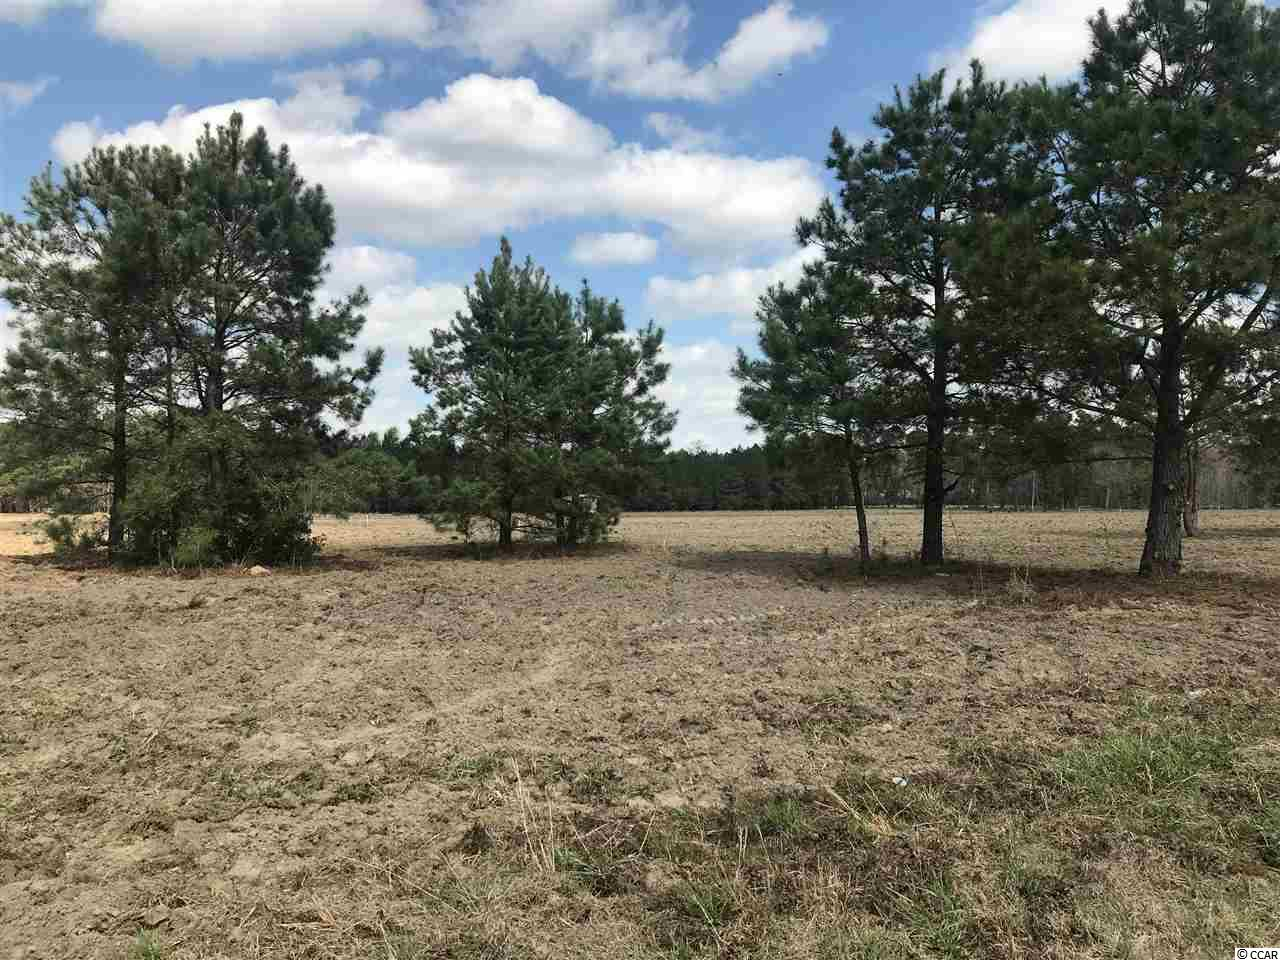 BEAUTIFUL 11 +/- ACRE TRACT- FRONT HALF CLEARED AND BACK SECTION OF PROPERTY IS WOODED- PUBLIC WATER AVAILABLE- RESTRICTED TO SINGLE FAMILY RESIDENTIAL.